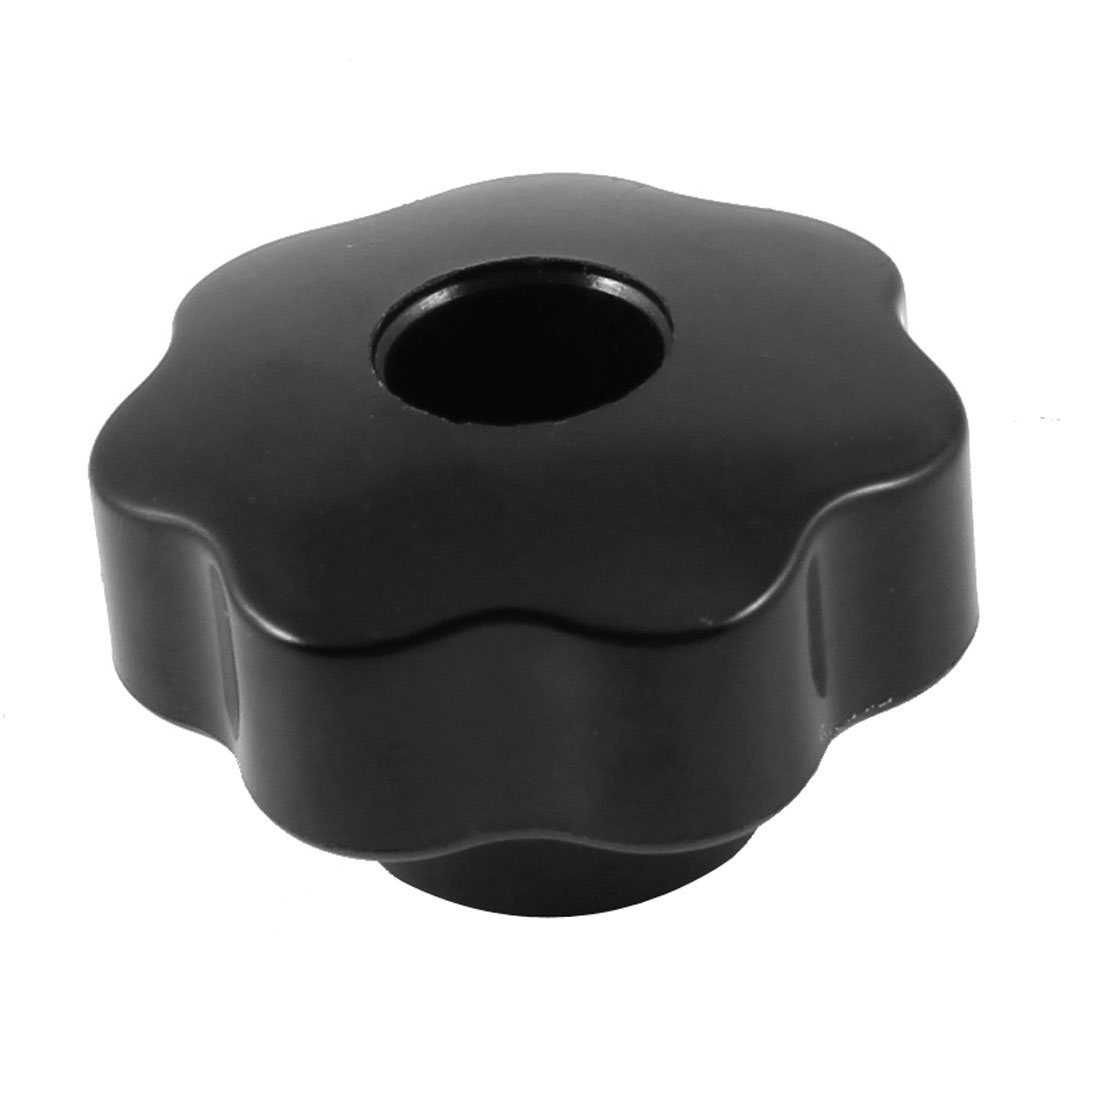 Black Plastic 7mm Female Thread 38mm Diameter Star Clamping Screw Knob